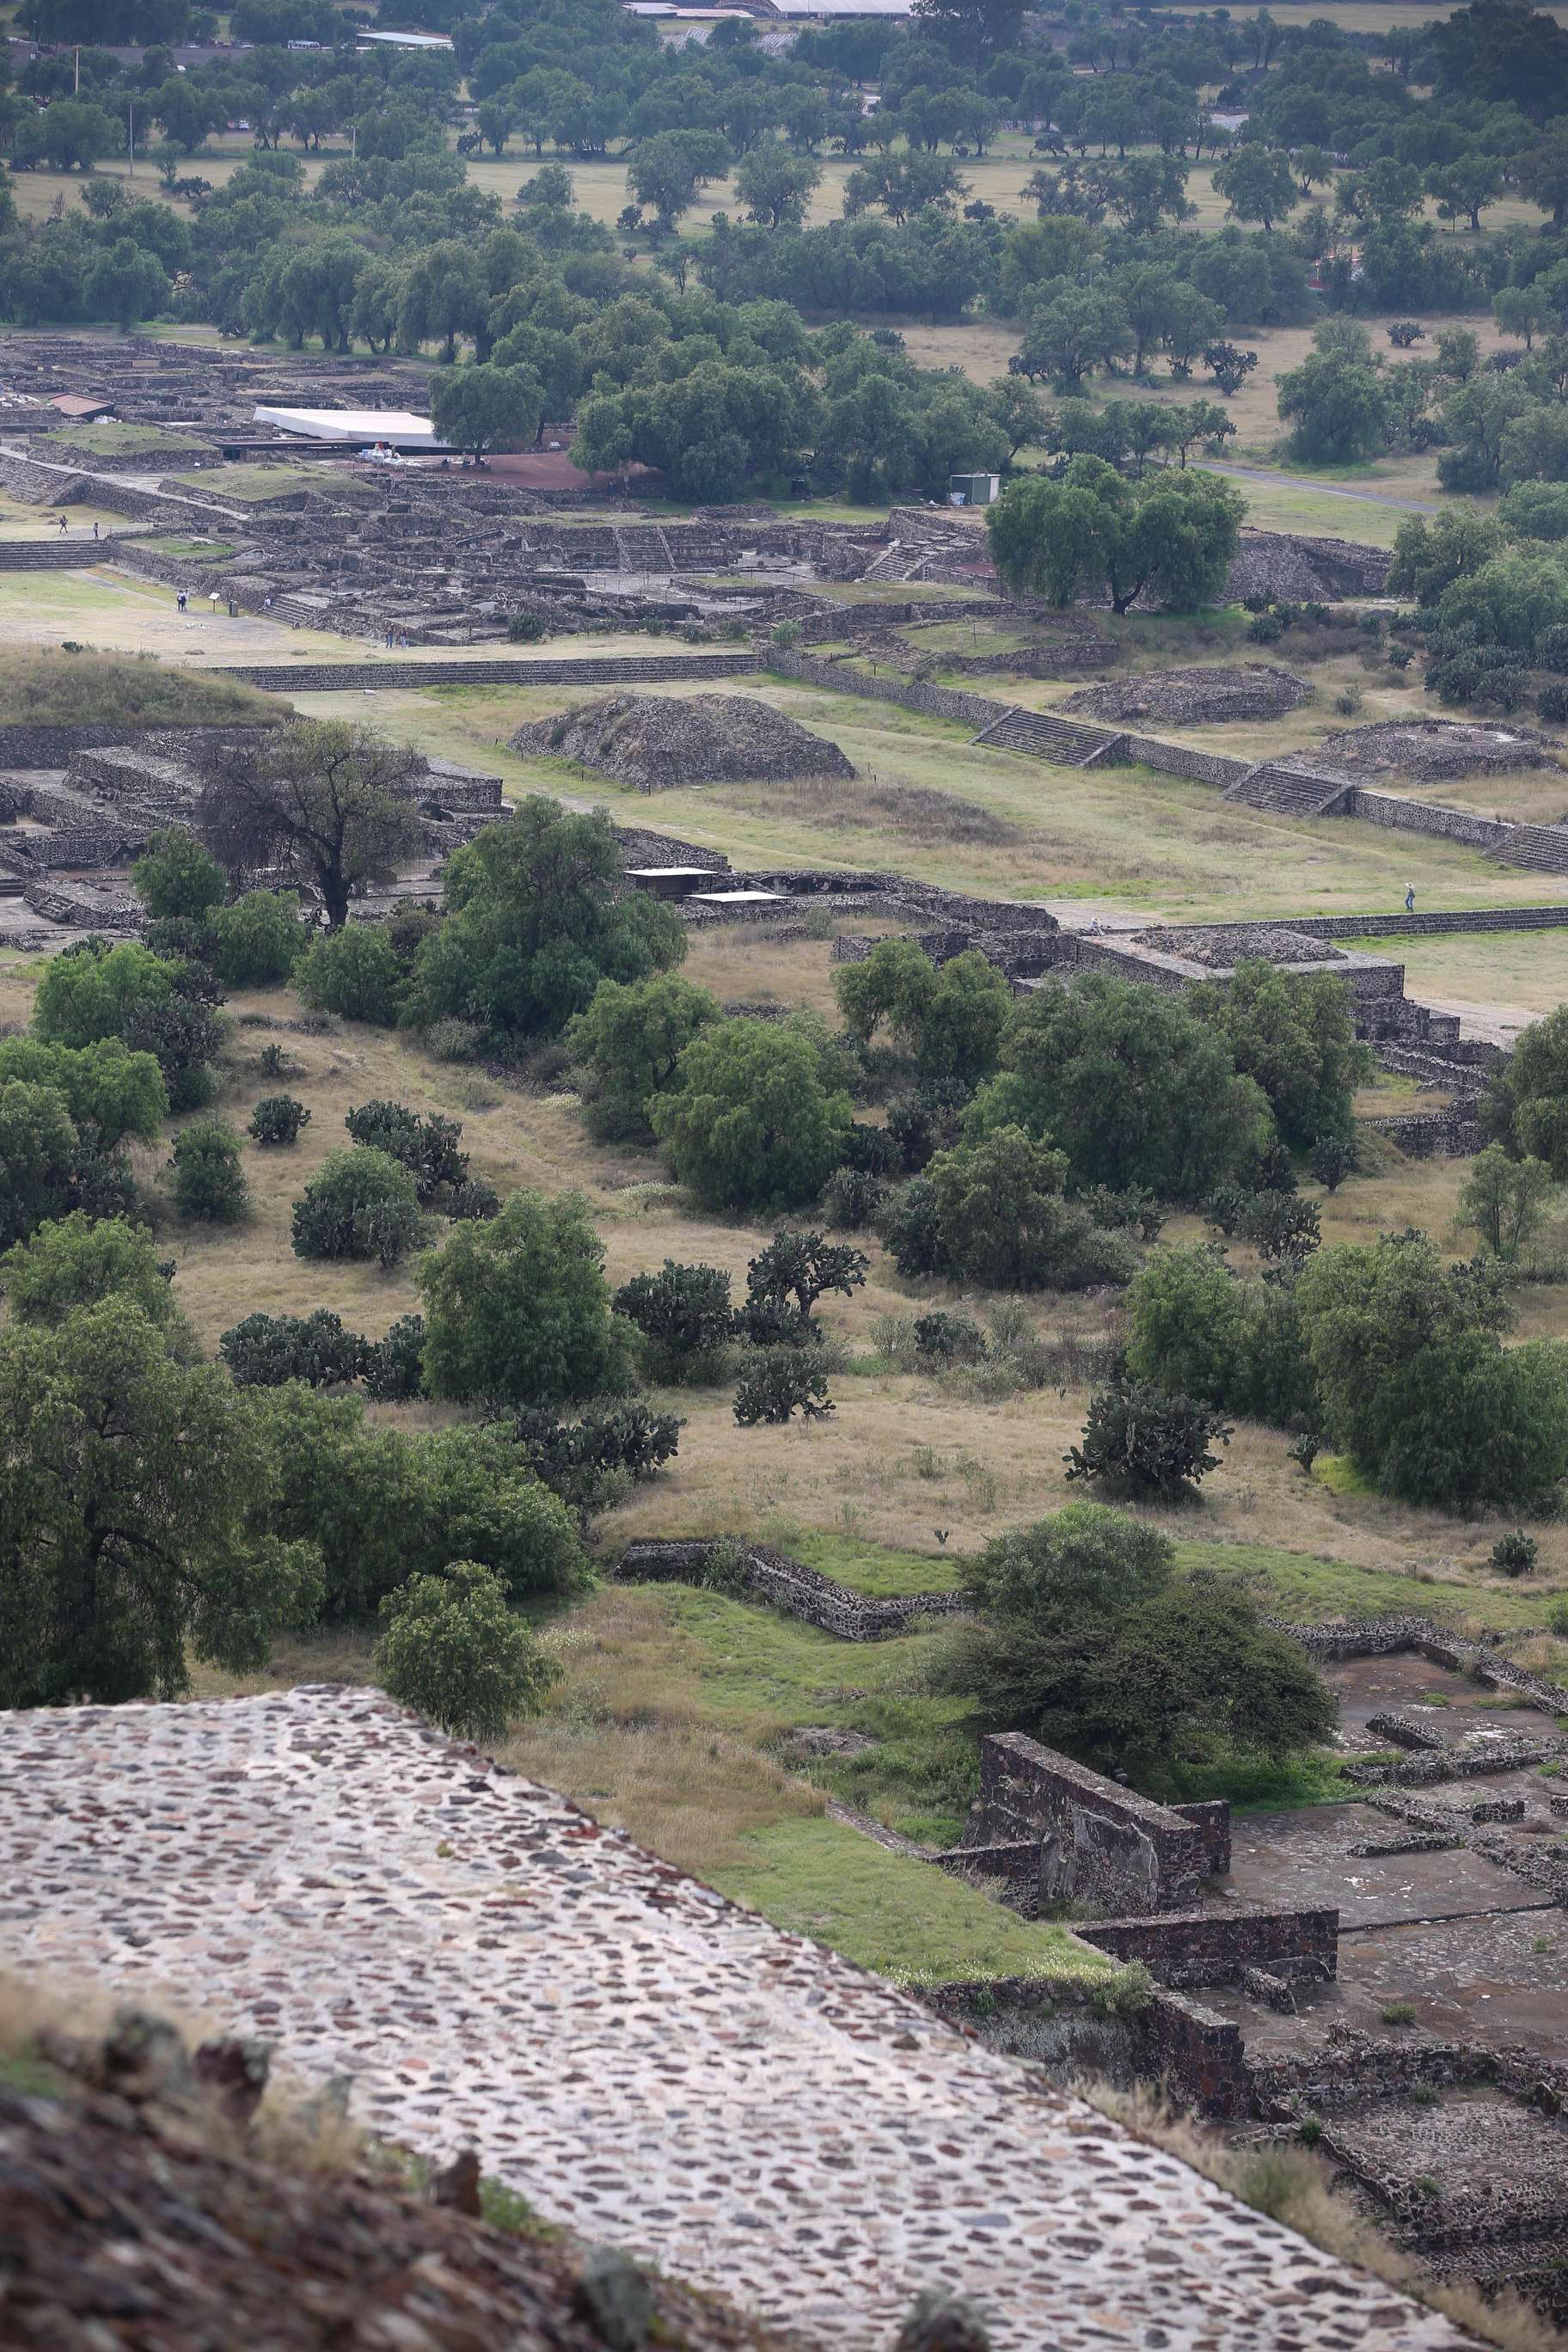 Since 'modern' archeologists began digging at Teotihuacan, more and more of the complex is being revealed, like this section south of the Pyramid of the Sun.